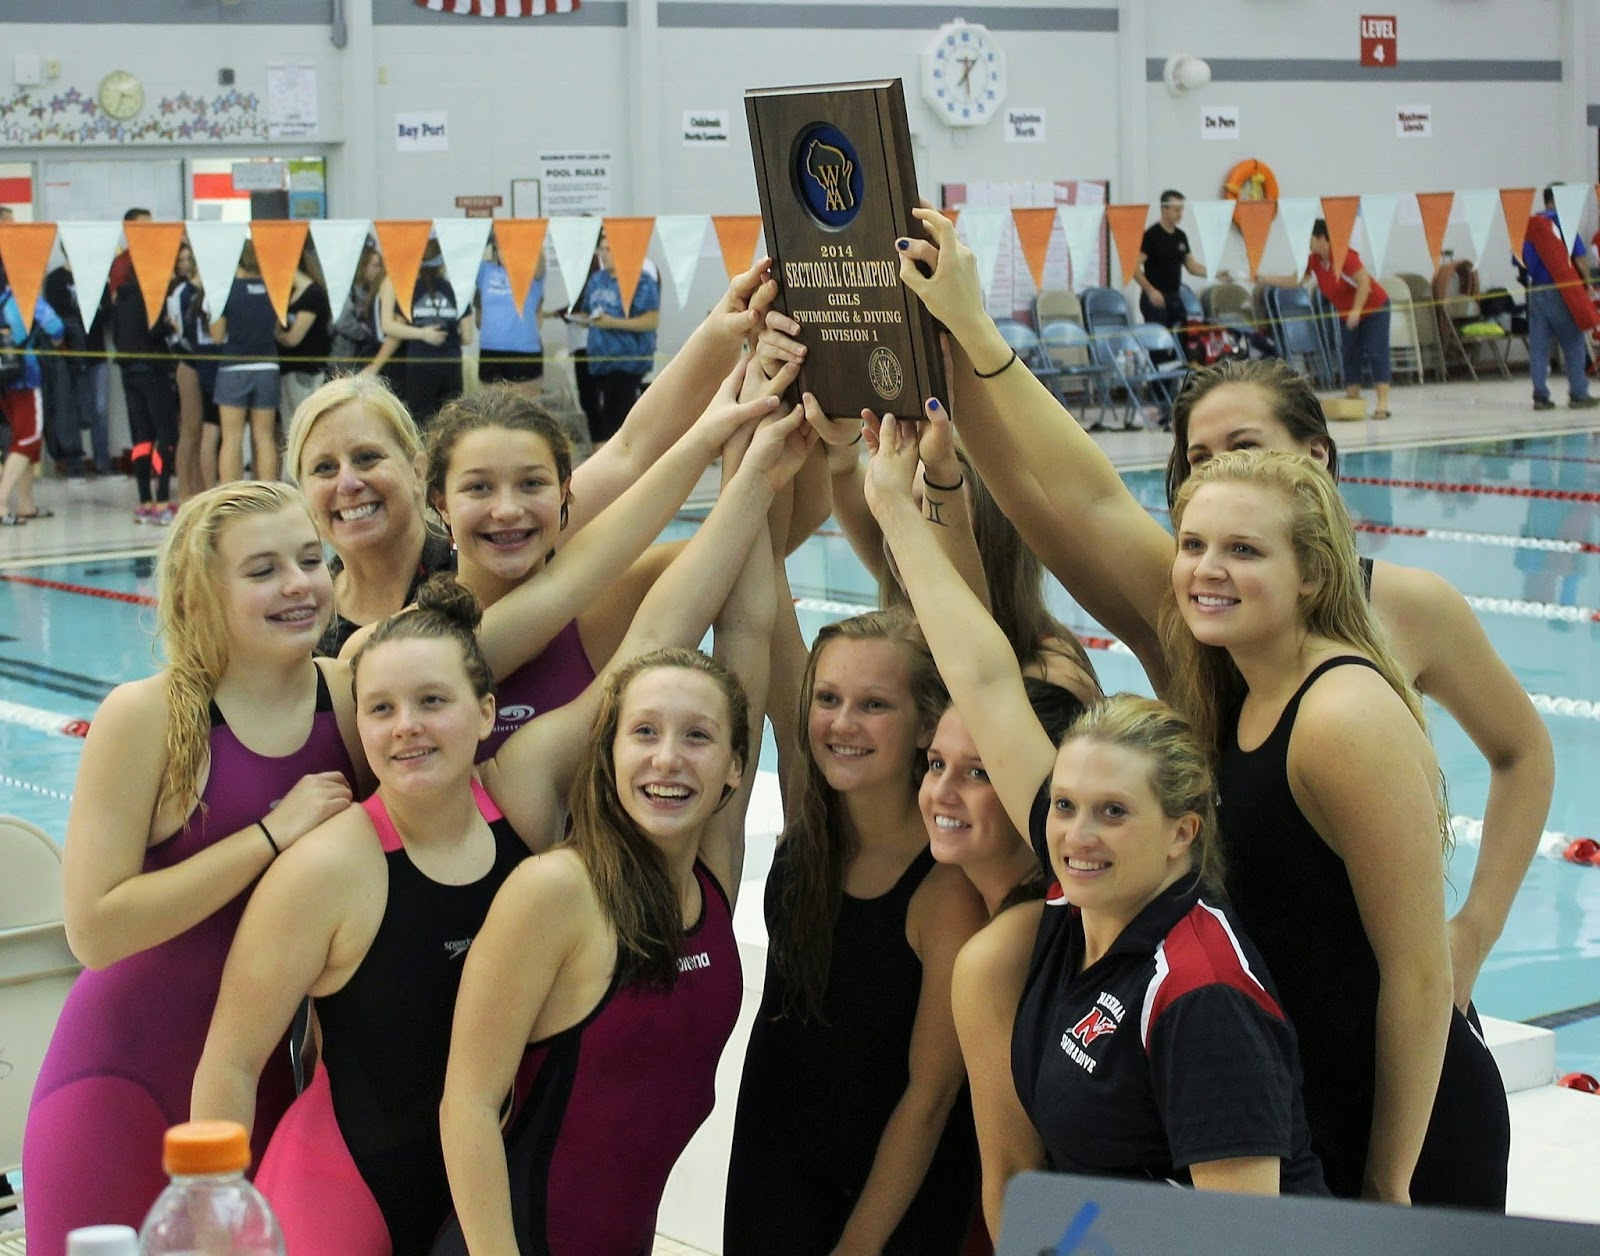 swim meet of champions 2014